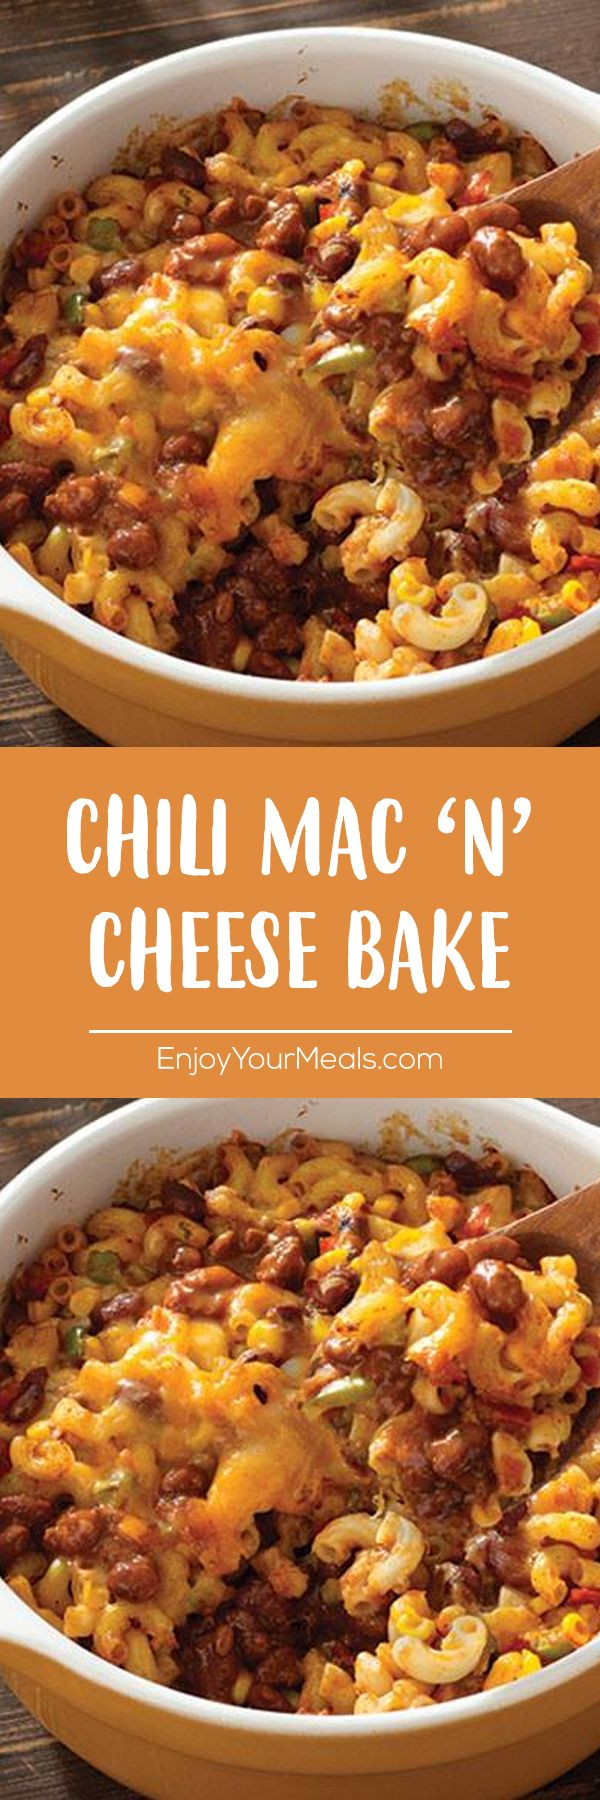 Chili Mac N Cheese Bake Enjoy Your Meals Recipes Flavoesrecipes Easyrecipe Chili Mac Casserole Cooking Mexican Food Recipes